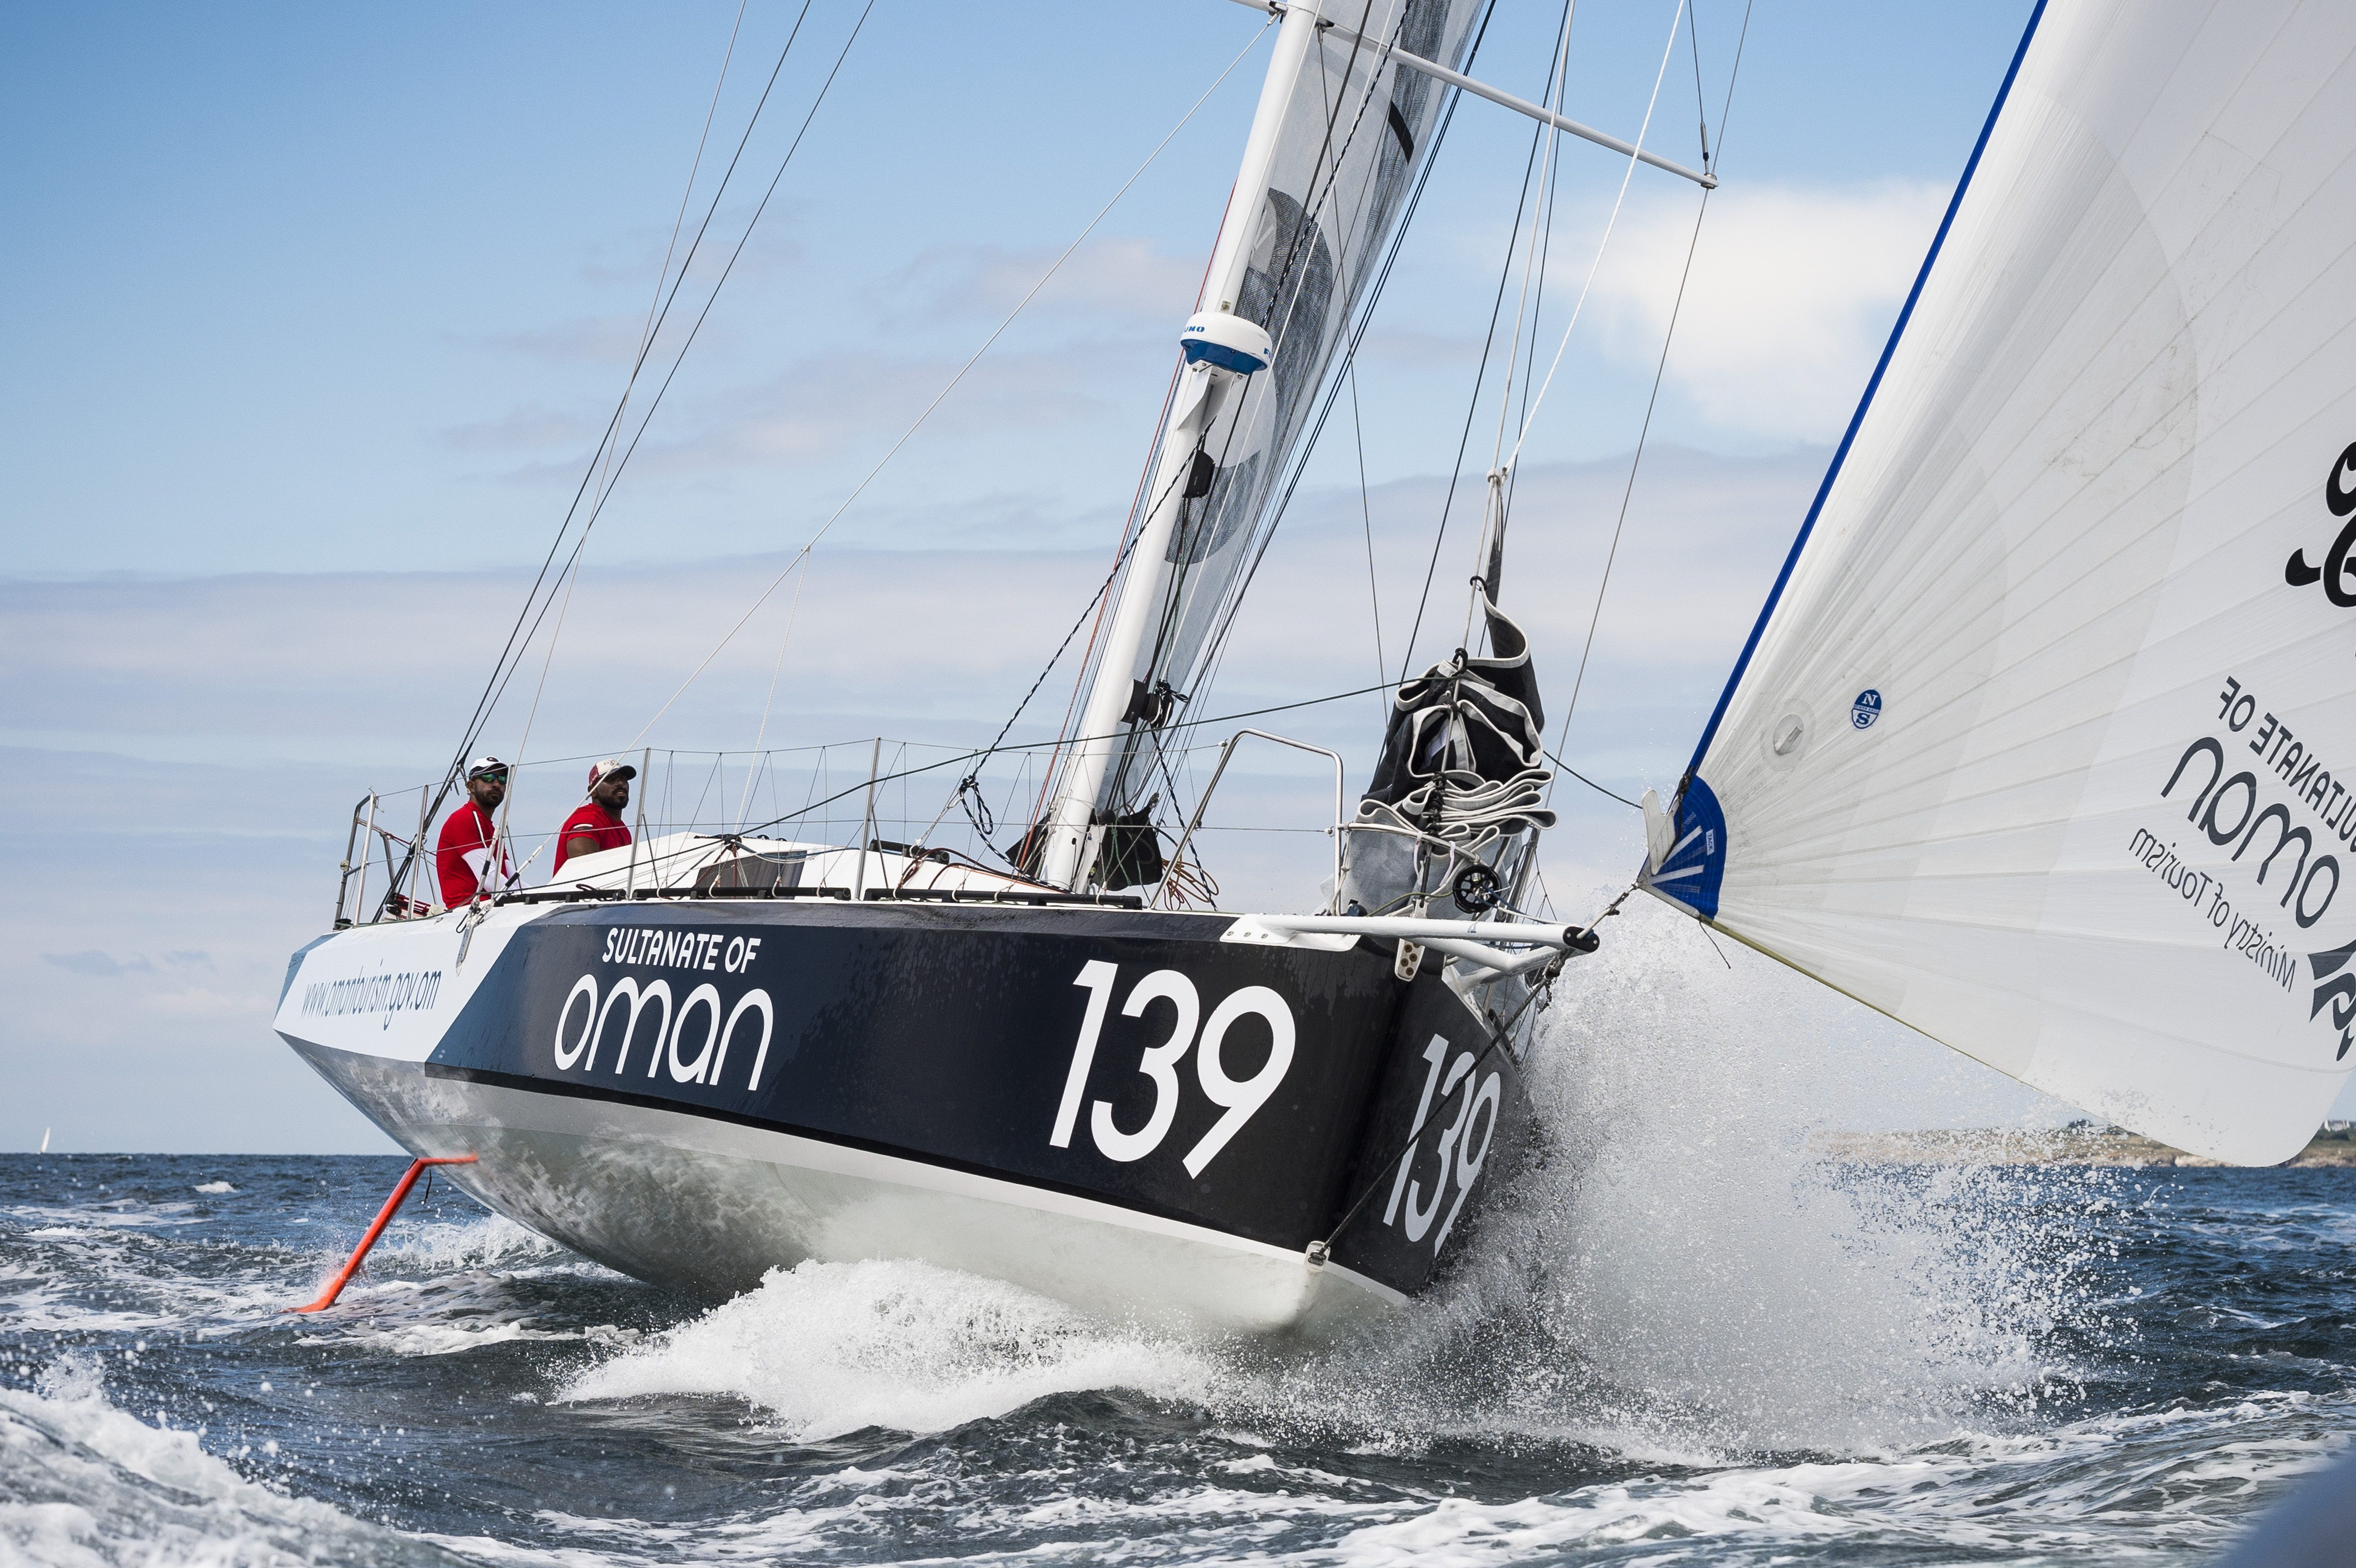 Oman Sail's Class 40 team quietly confident as they make final preparations for the Transat Jacques Vabre